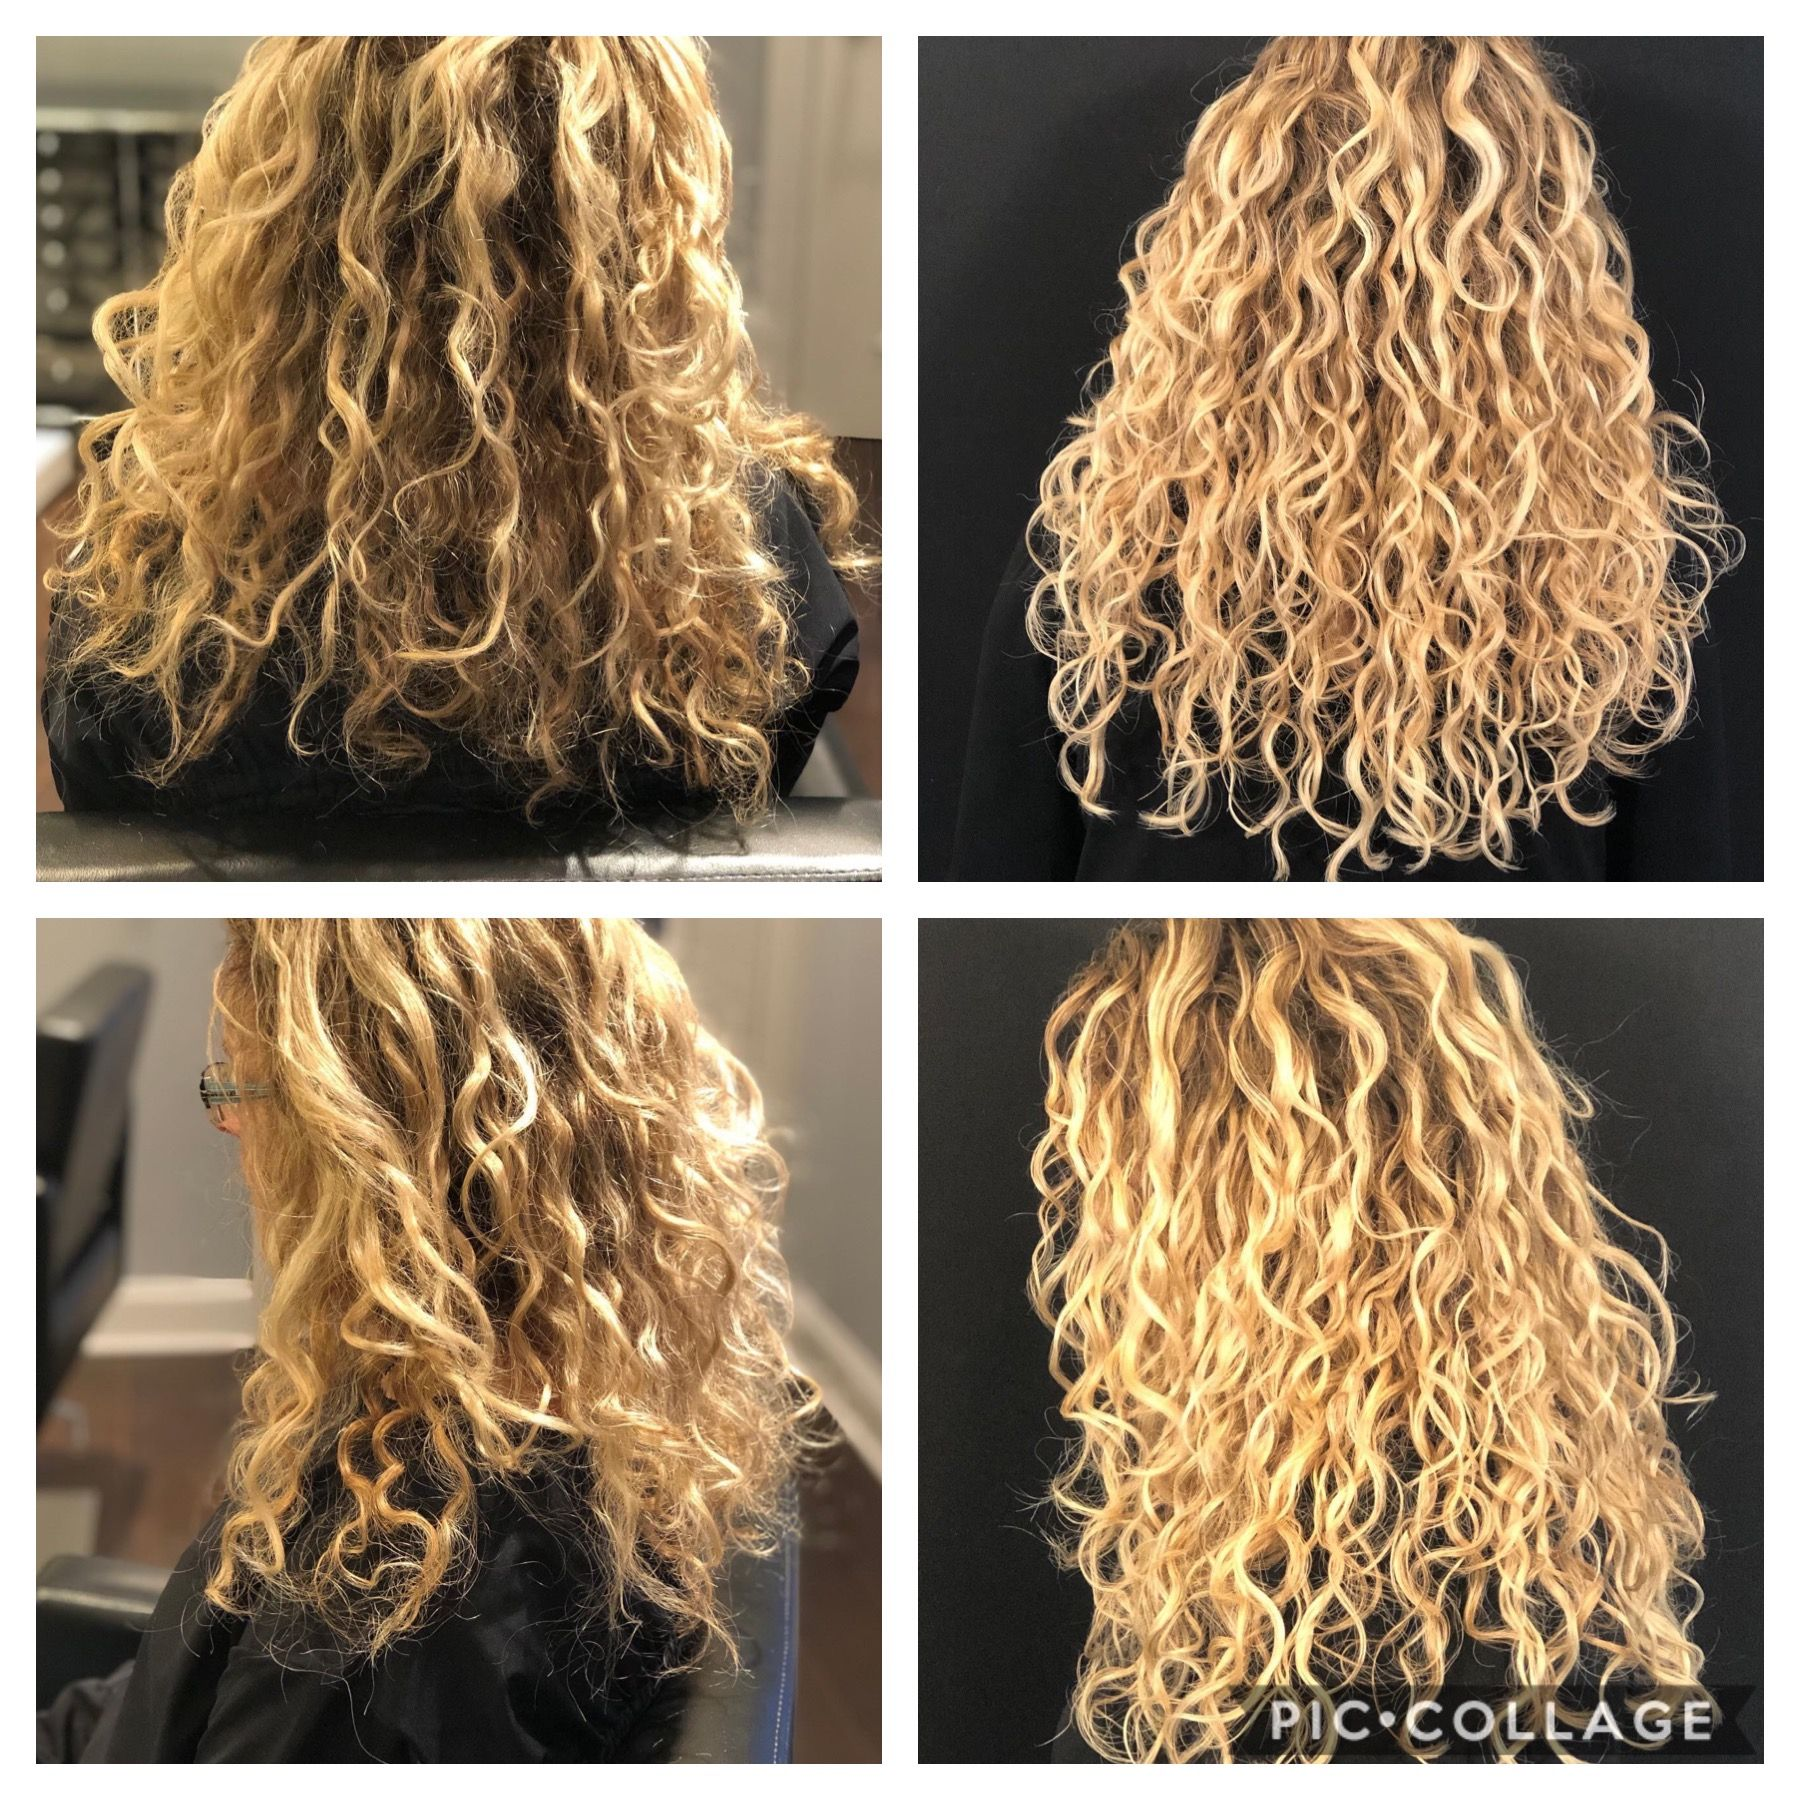 Adored Signature Hand Tied Hair Extensions In 2020 Platinum Hair Extensions Wavy Hair Extensions Curly Hair Salon